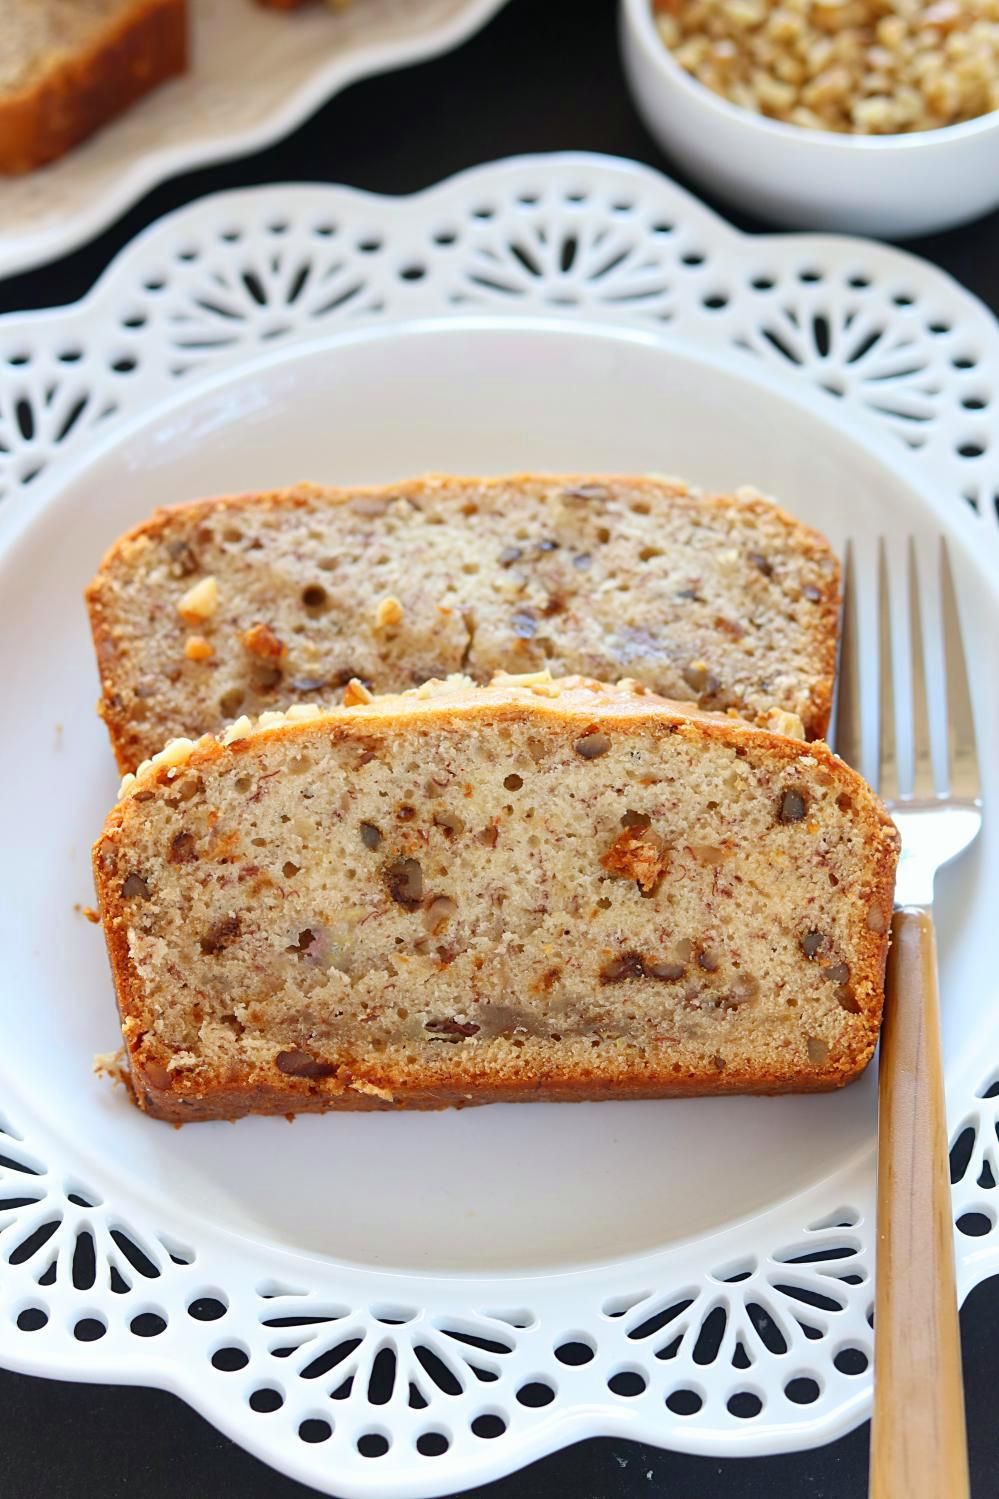 Vegan Banana Nut Bread made with Walnuts - Ruchiskitchen